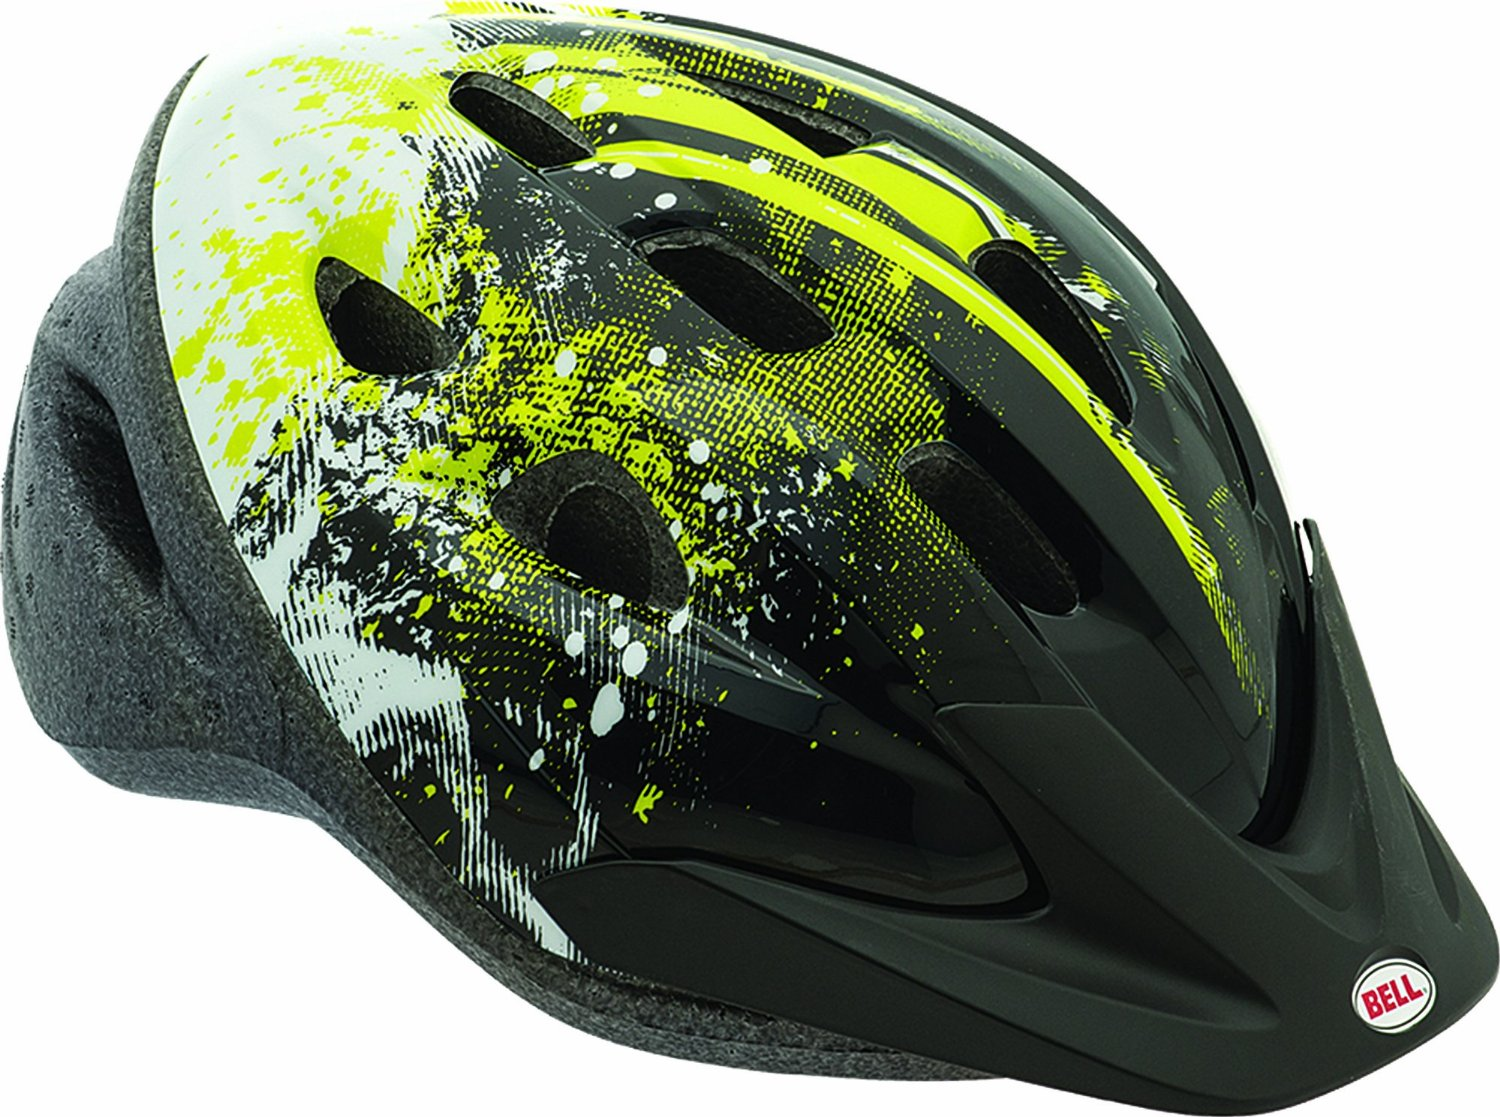 Bell Kids & Youth Bicycle Helmets